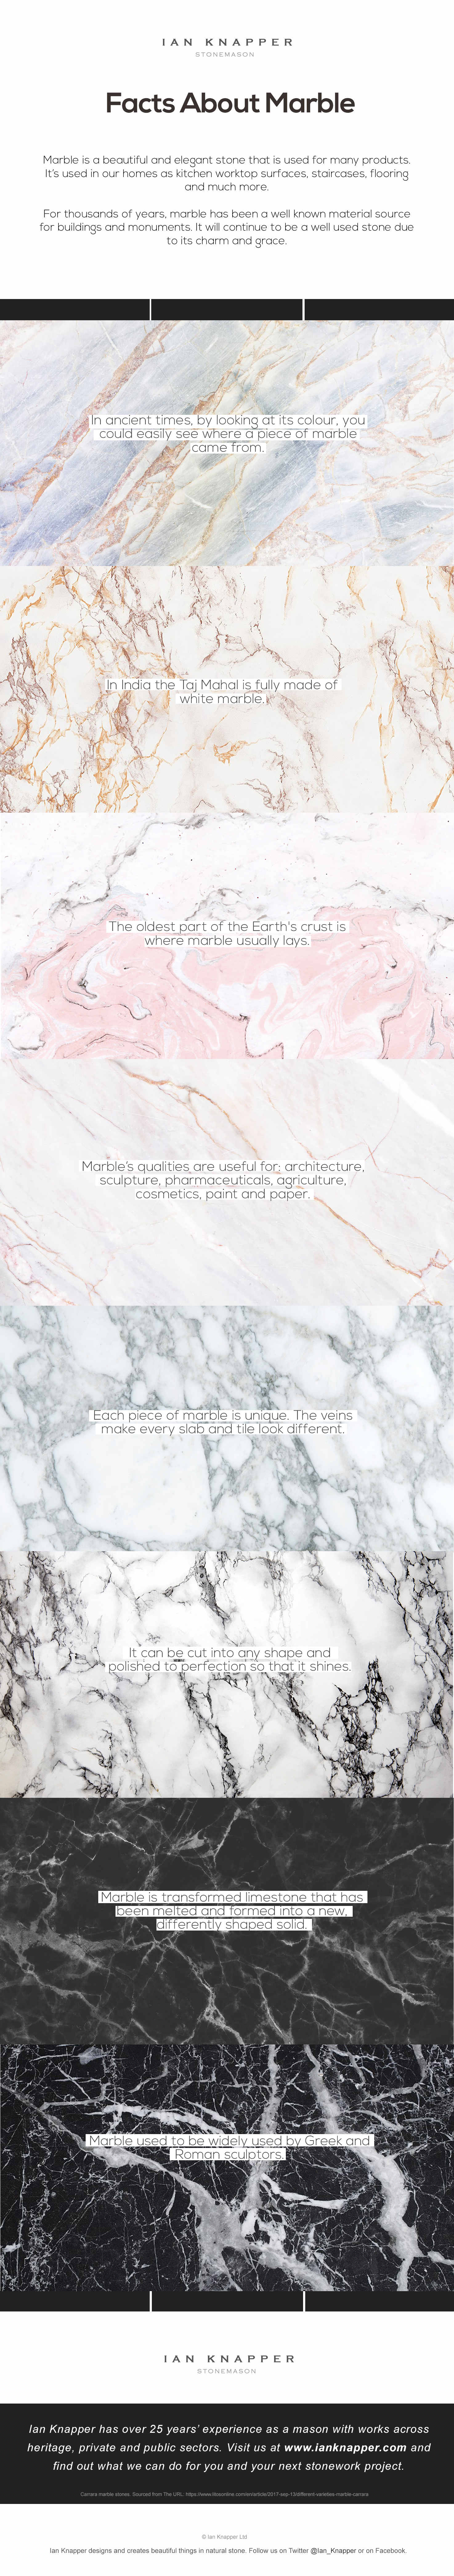 marble facts